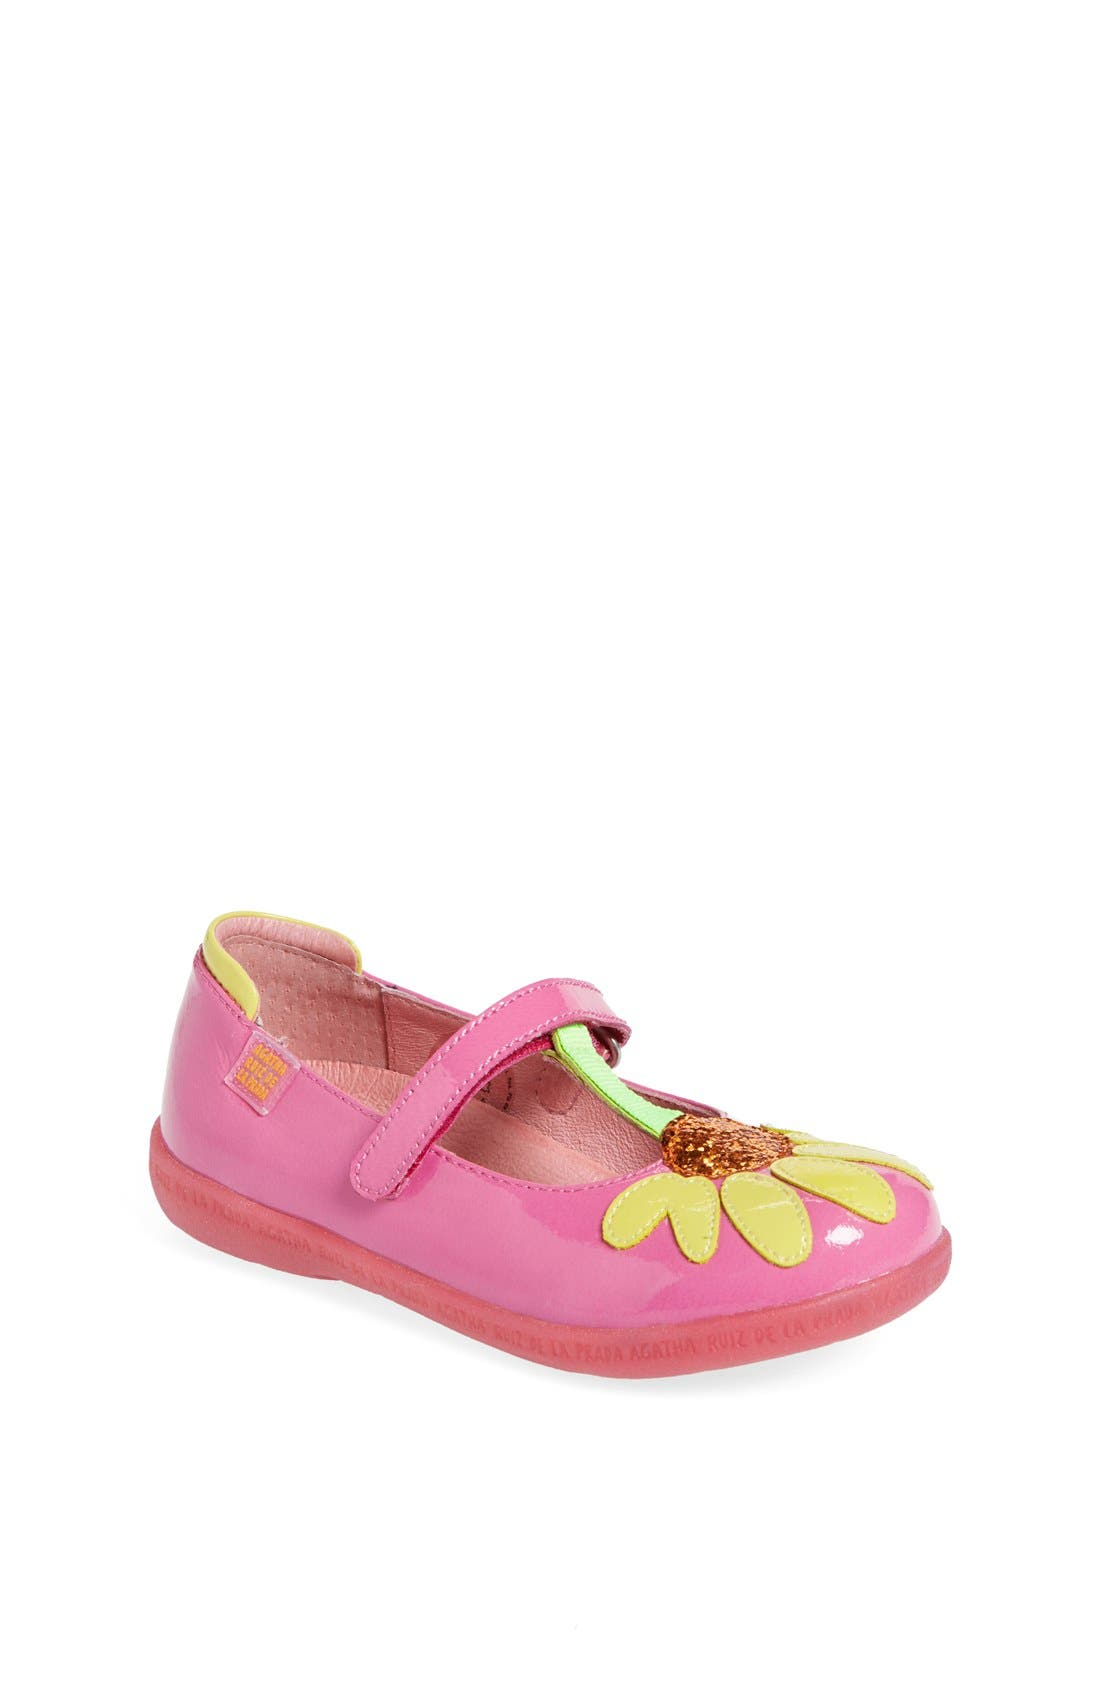 Main Image - Agatha Ruiz de la Prada 'Glitter Flower' Mary Jane (Toddler & Little Kid)